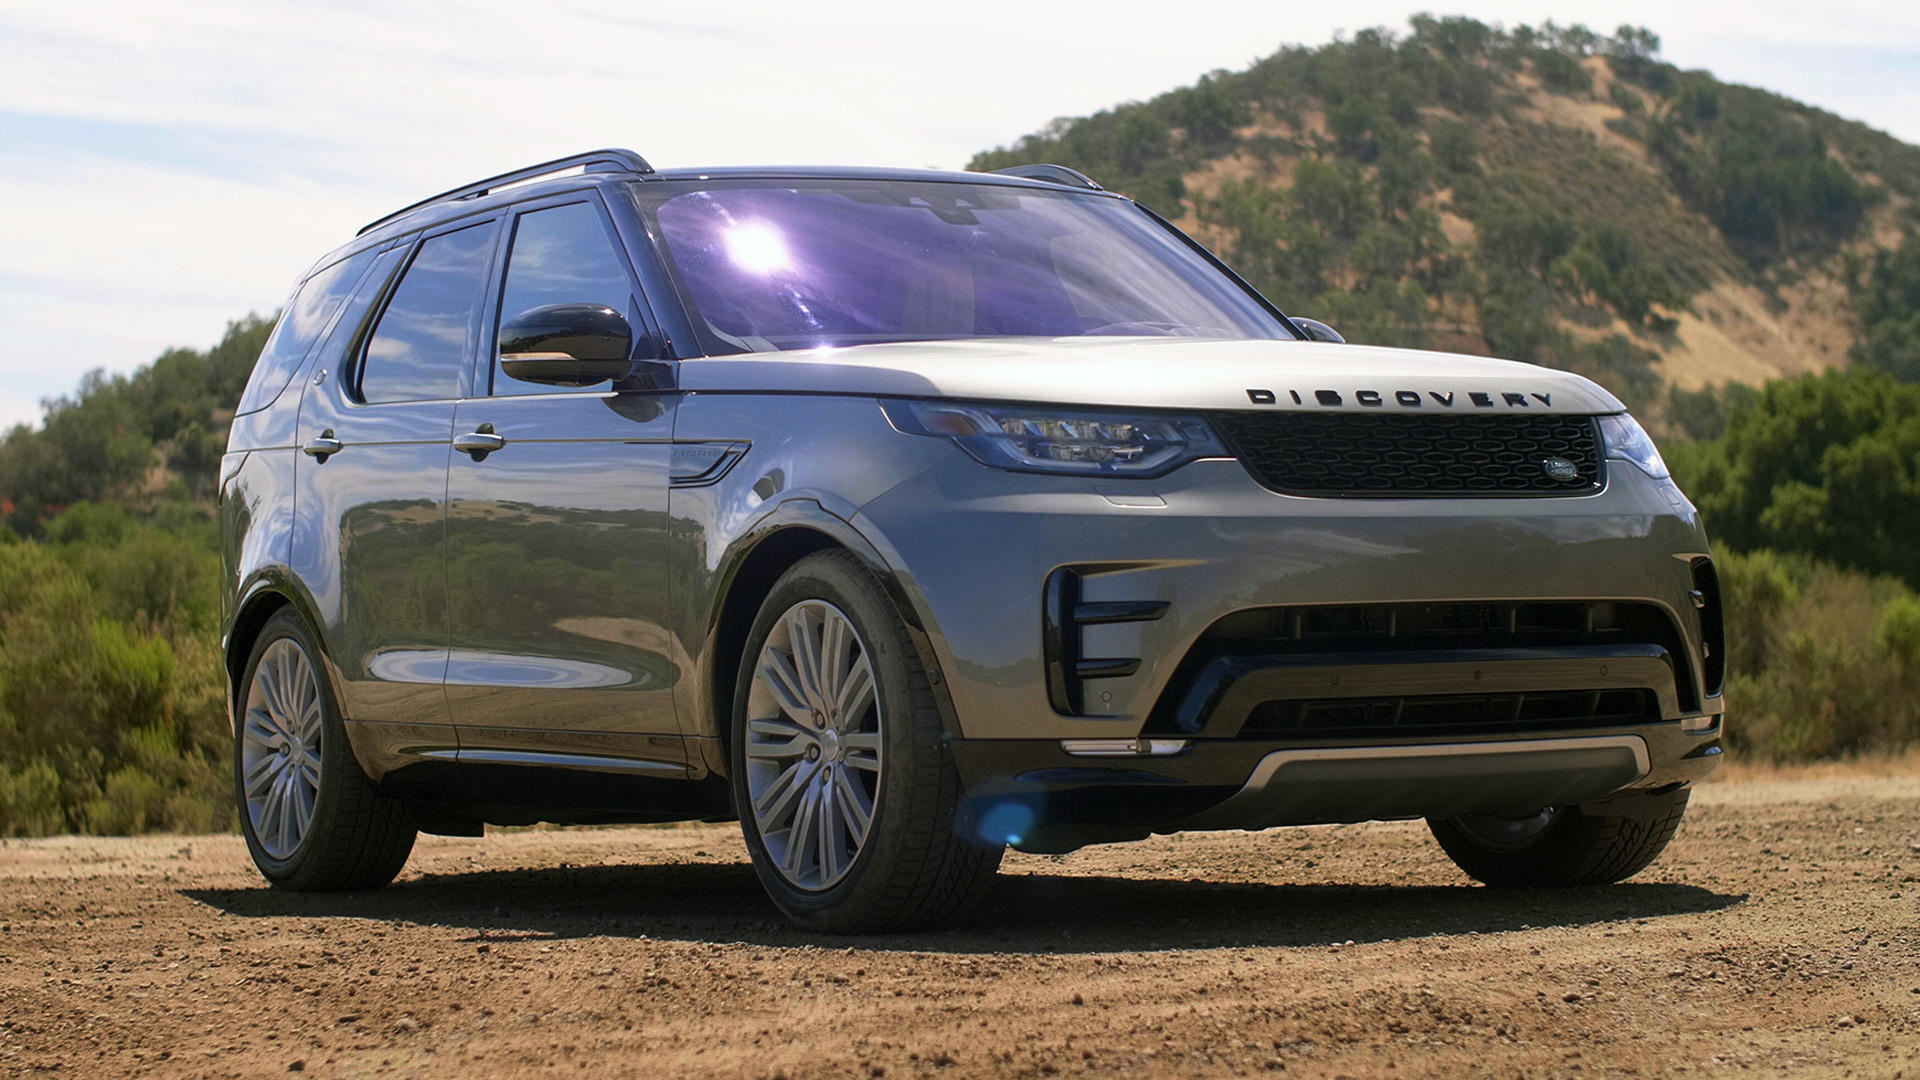 Video: 2018 Land Rover Discovery: Can it climb Truck Hill?